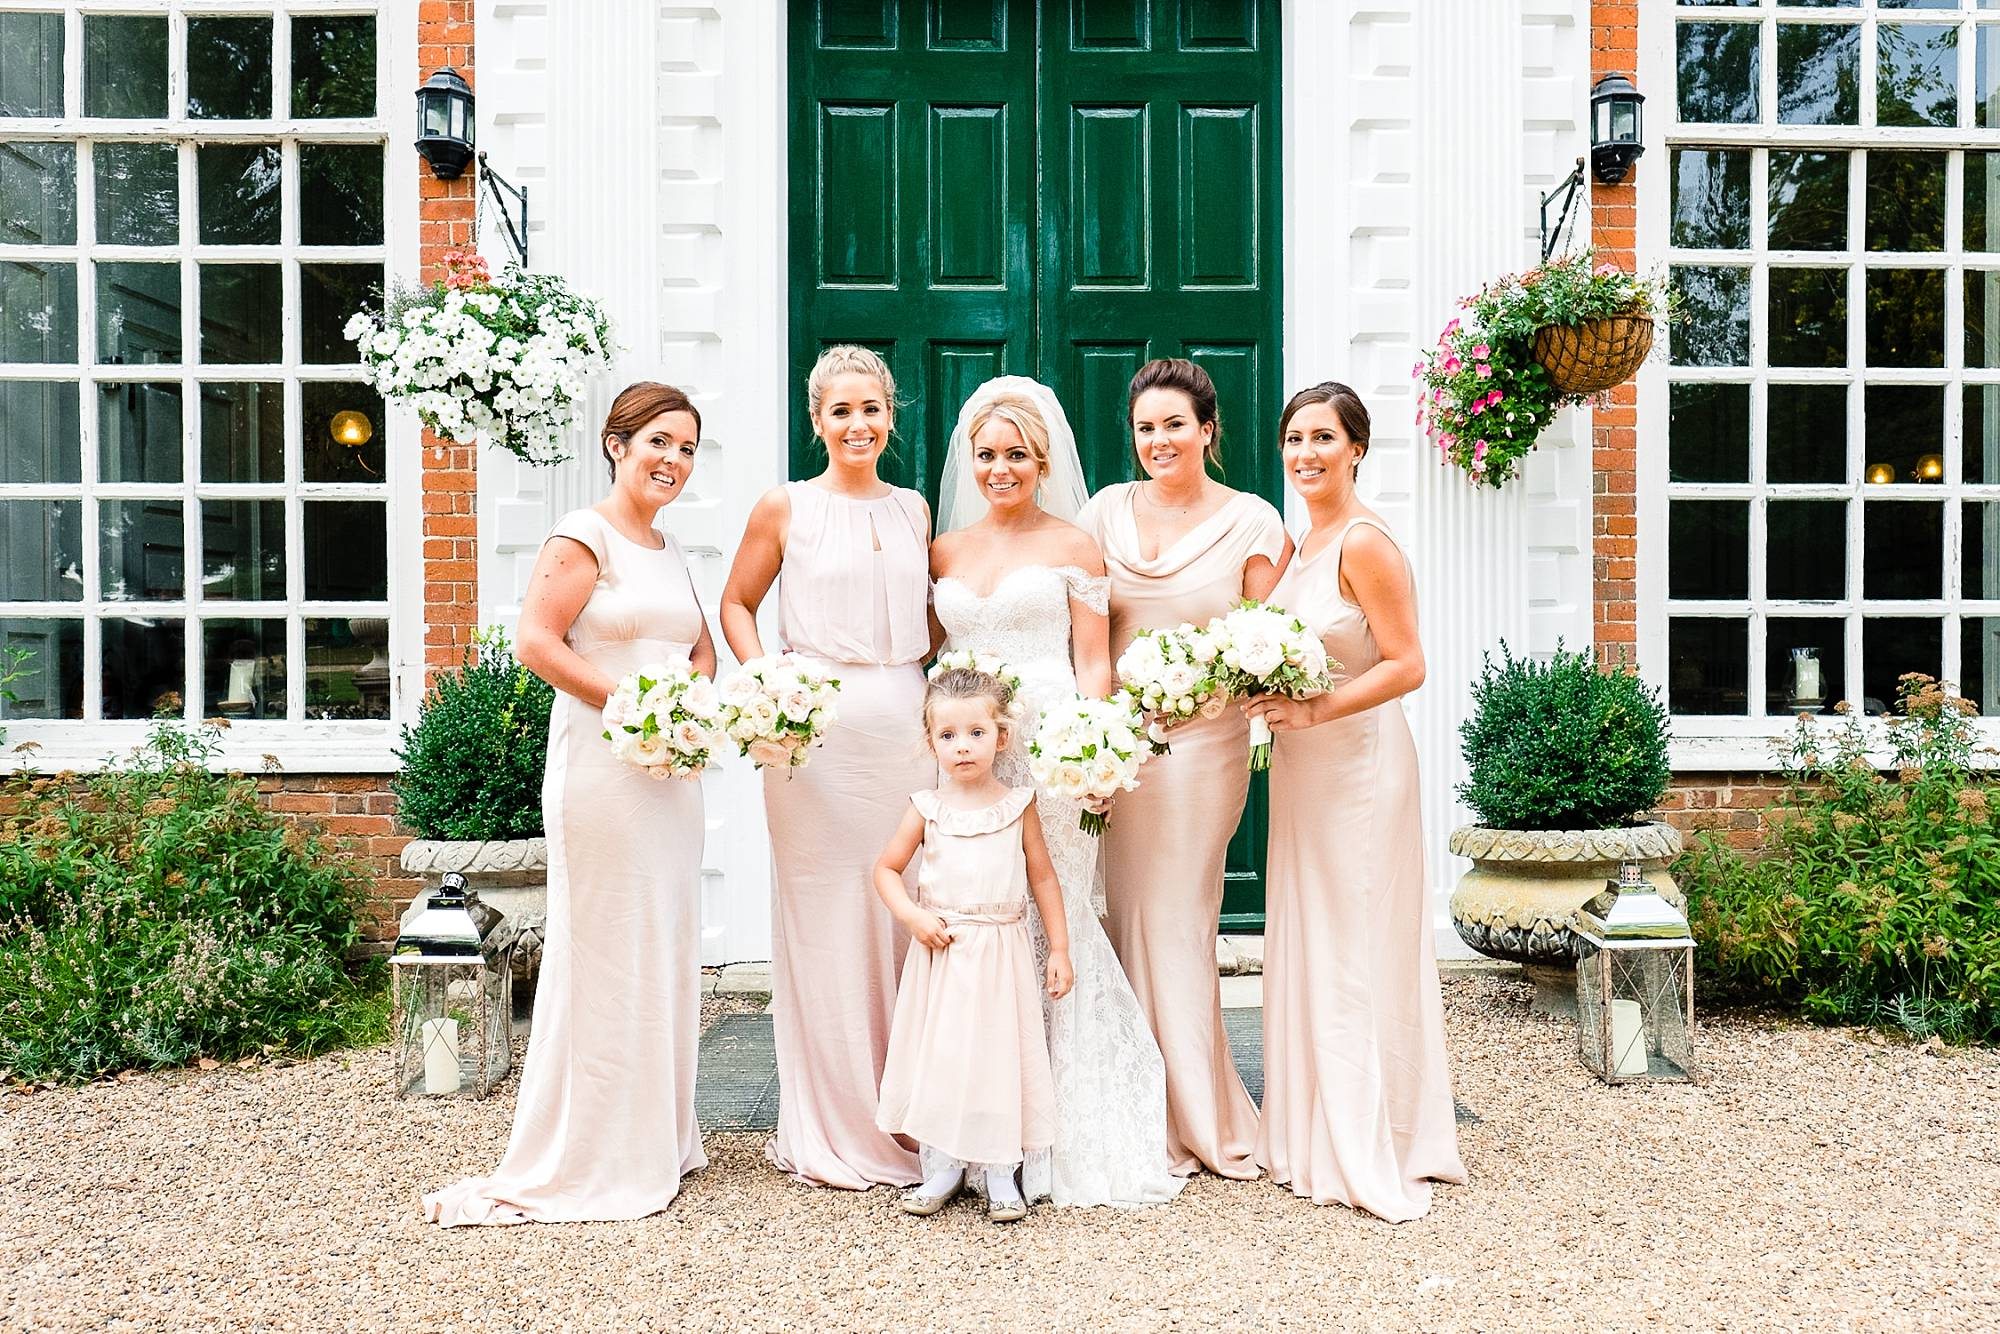 Gosfield Hall Essex Wedding Photographer_0098.jpg